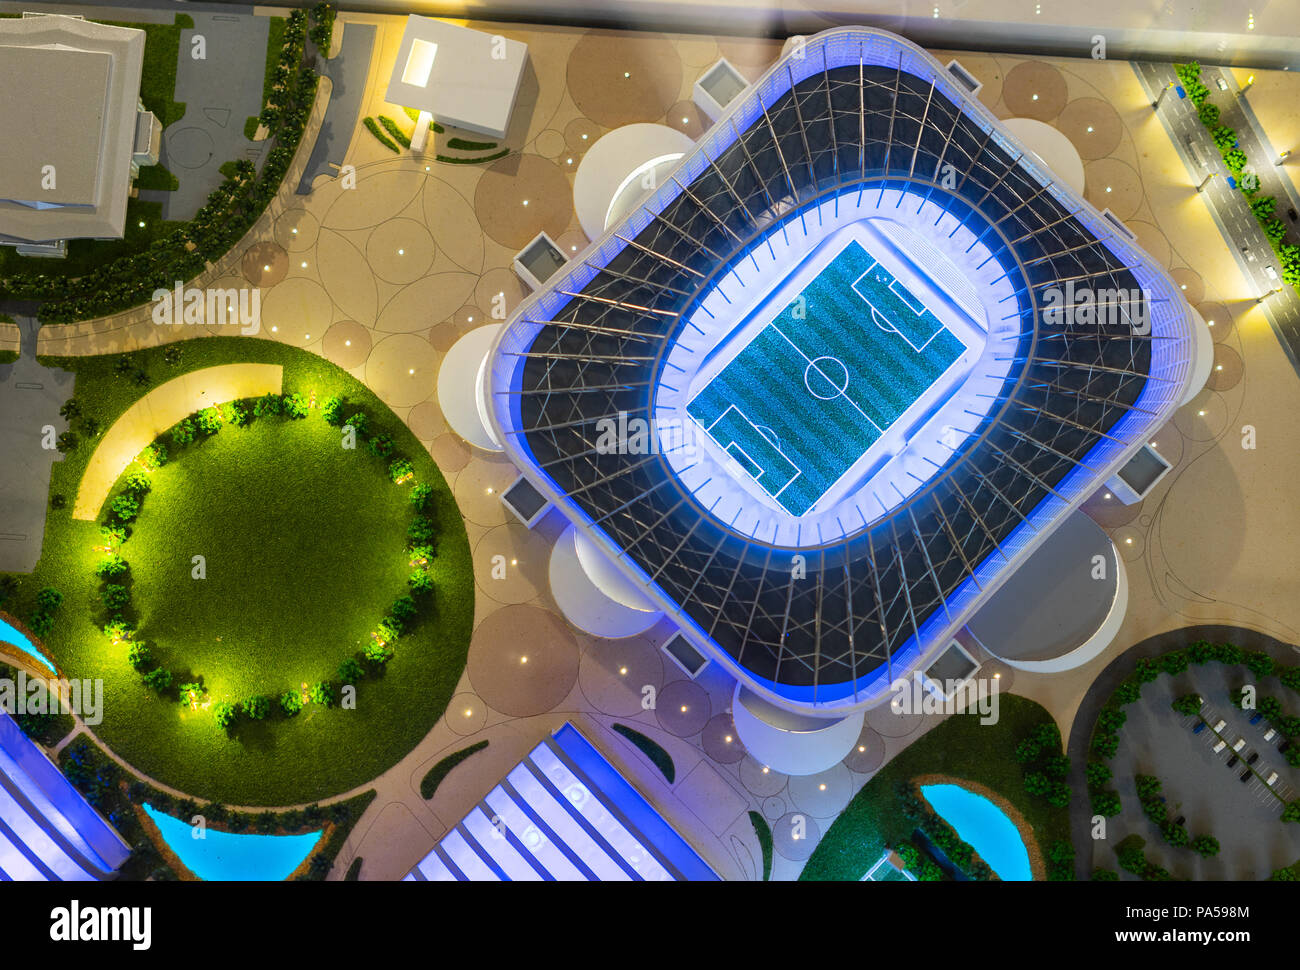 July 7, 2018, Moscow, Russia The mock-up of the Khalifa International Stadium at which the matches of the FIFA World Cup 2022 in Qatar will be held. Stock Photo